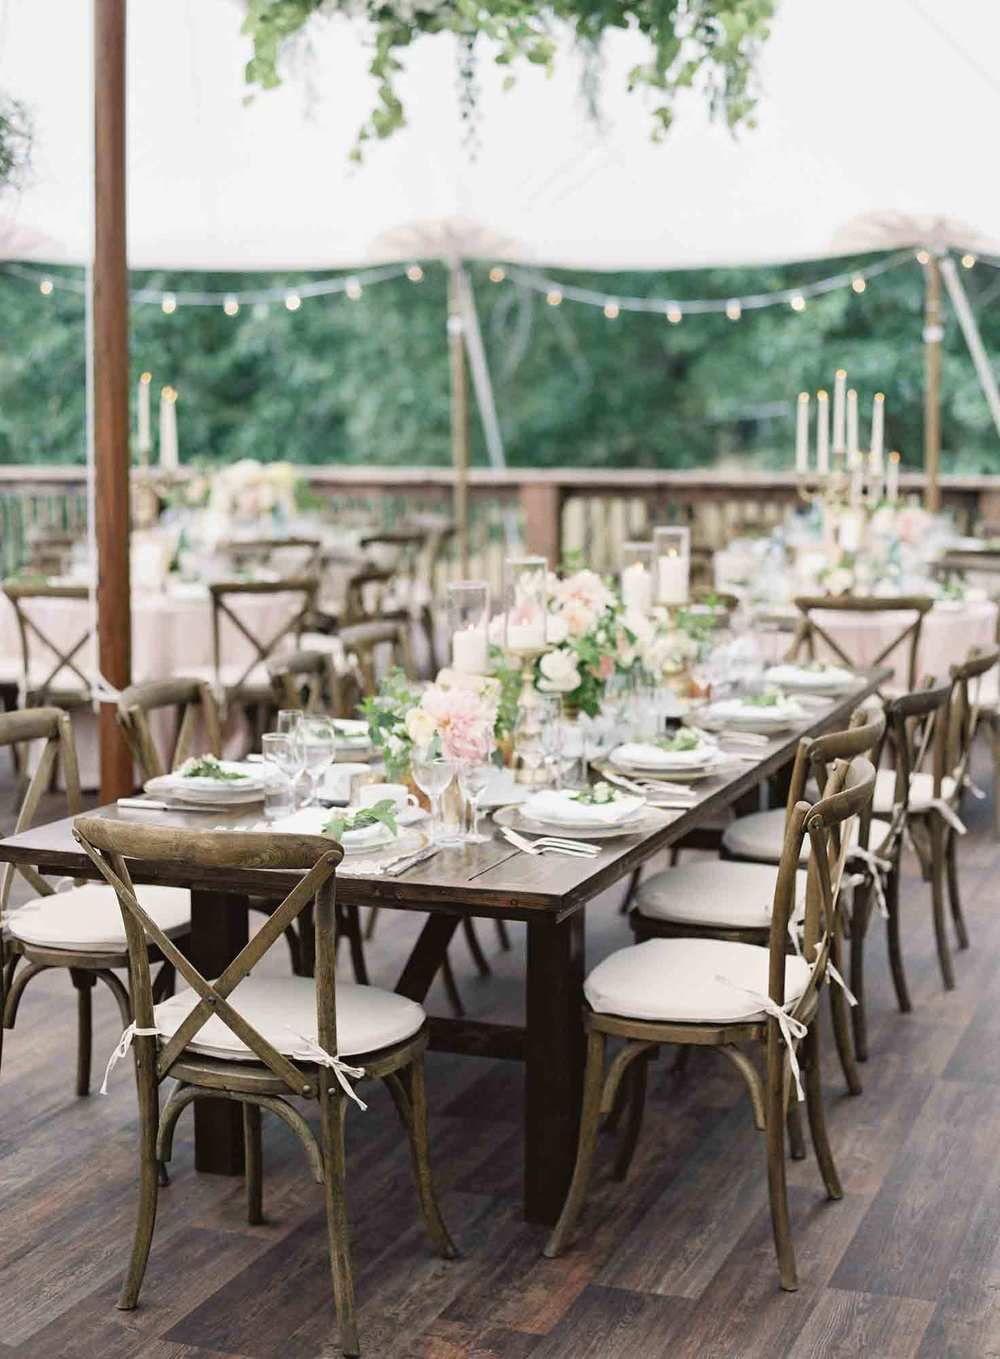 10 foot Barnwood banquet tables from Seattle Farm Tables in stylish